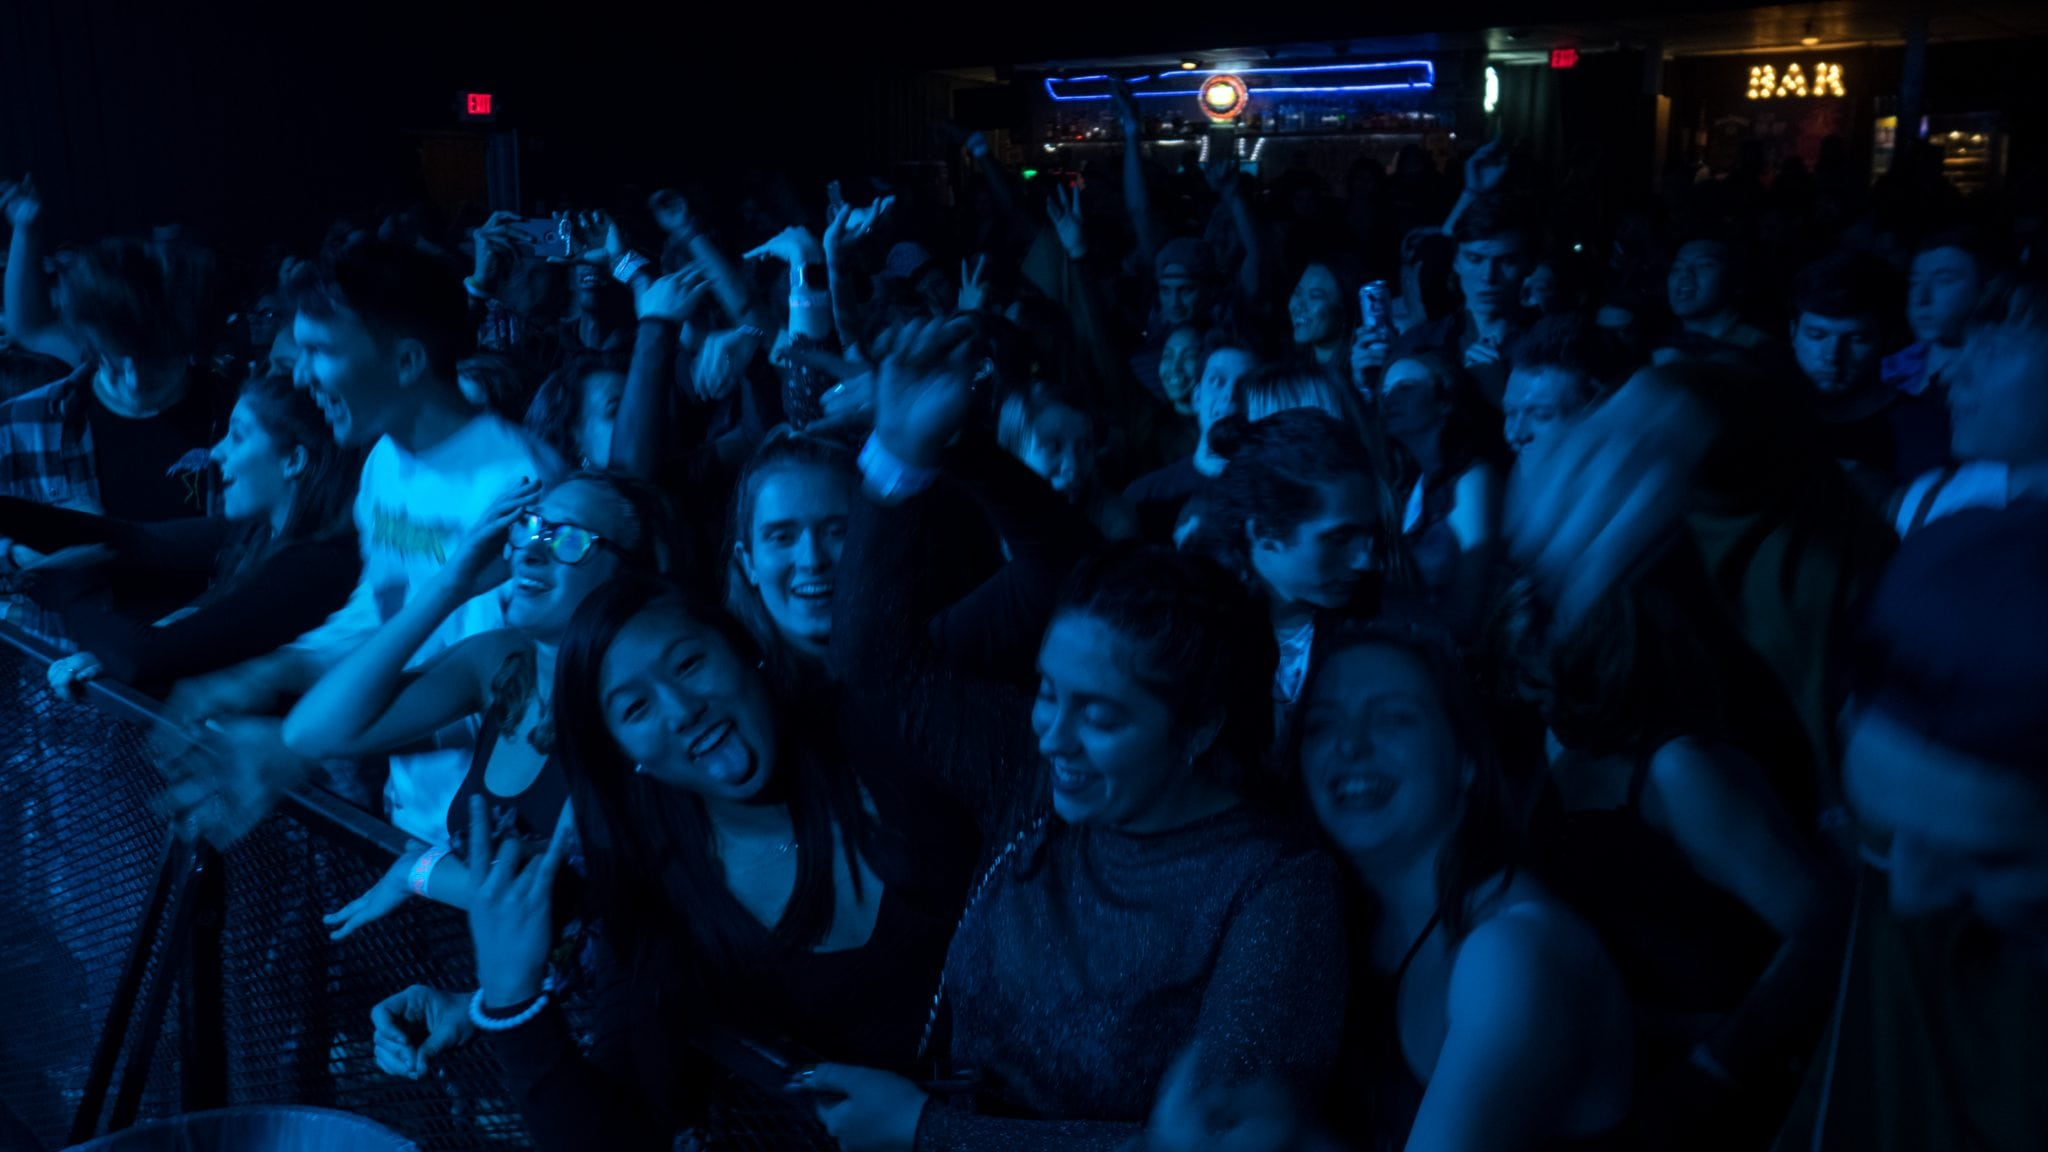 Fans at the Big Wild show at The Westcott Theater